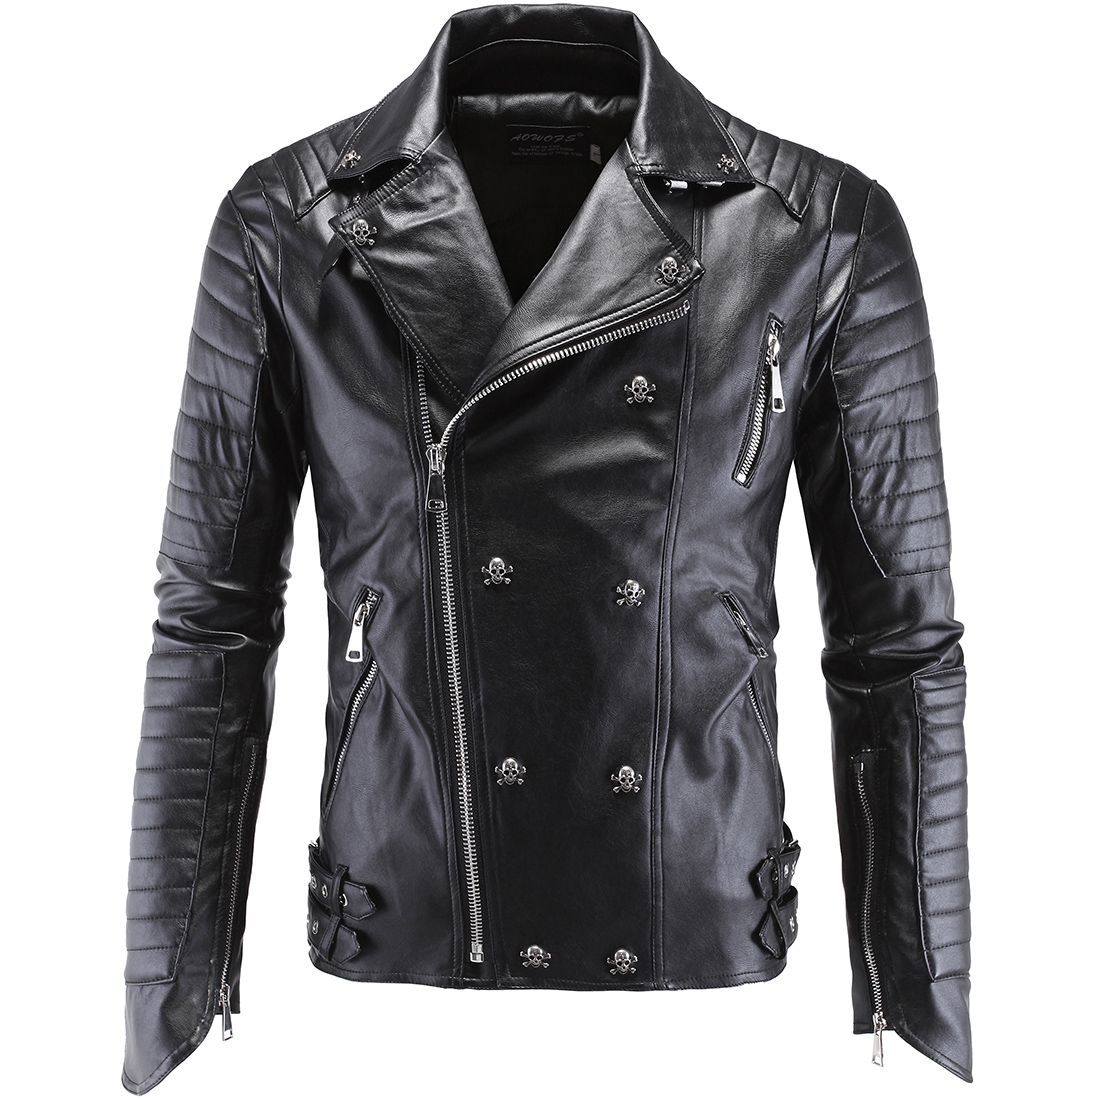 Fashion Men's Winter Leather Double Breasted Jackets Faux Jacket Stylish Slim Fit Coats Men Moto Skull Suede Jacket For Men